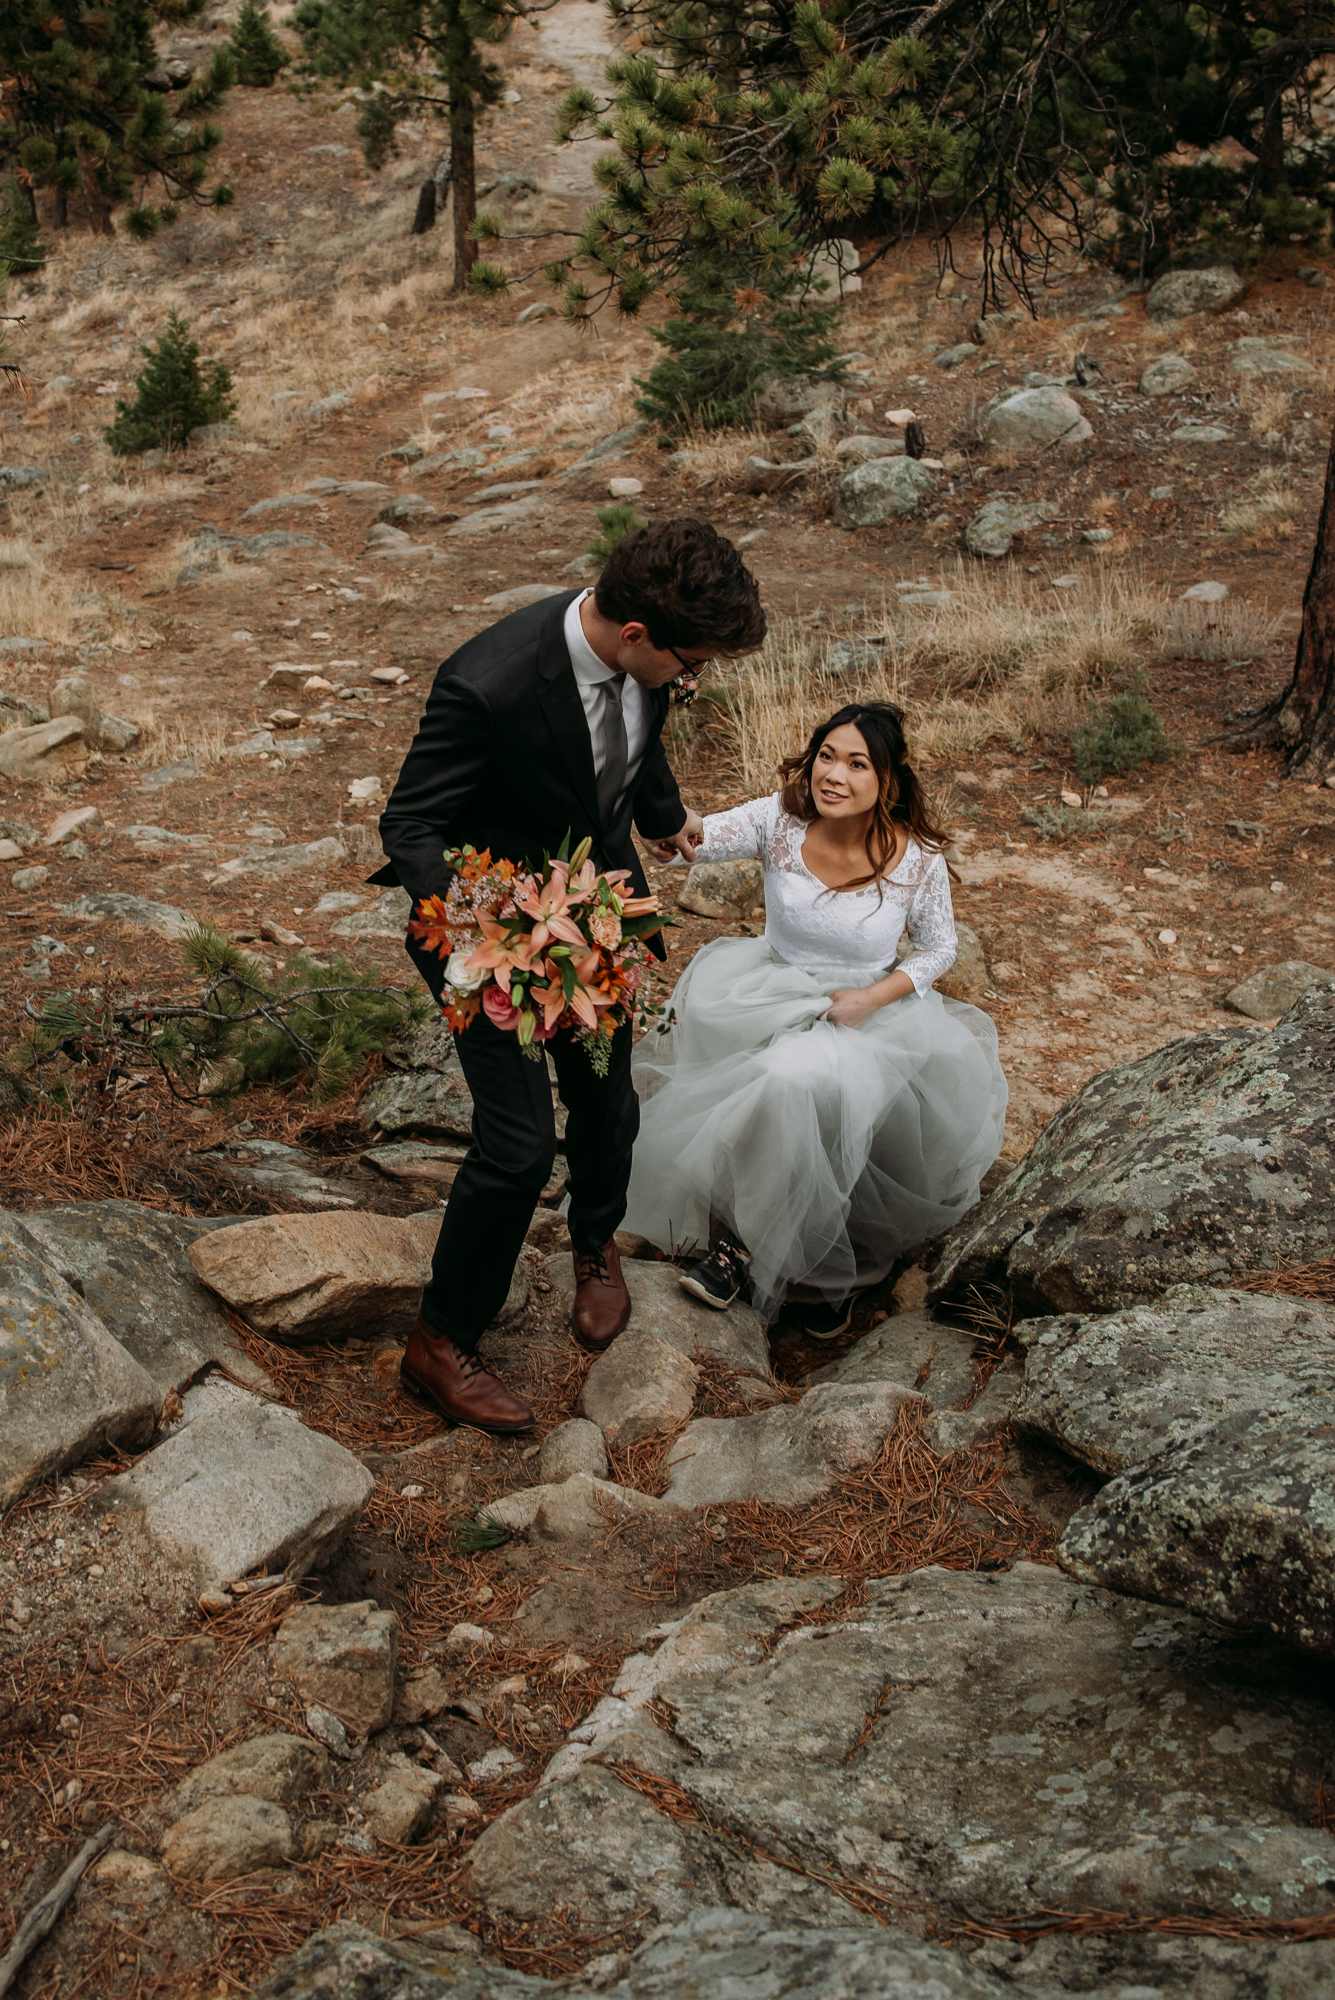 Justin helps Alice climb up the rocks in her wedding dress.